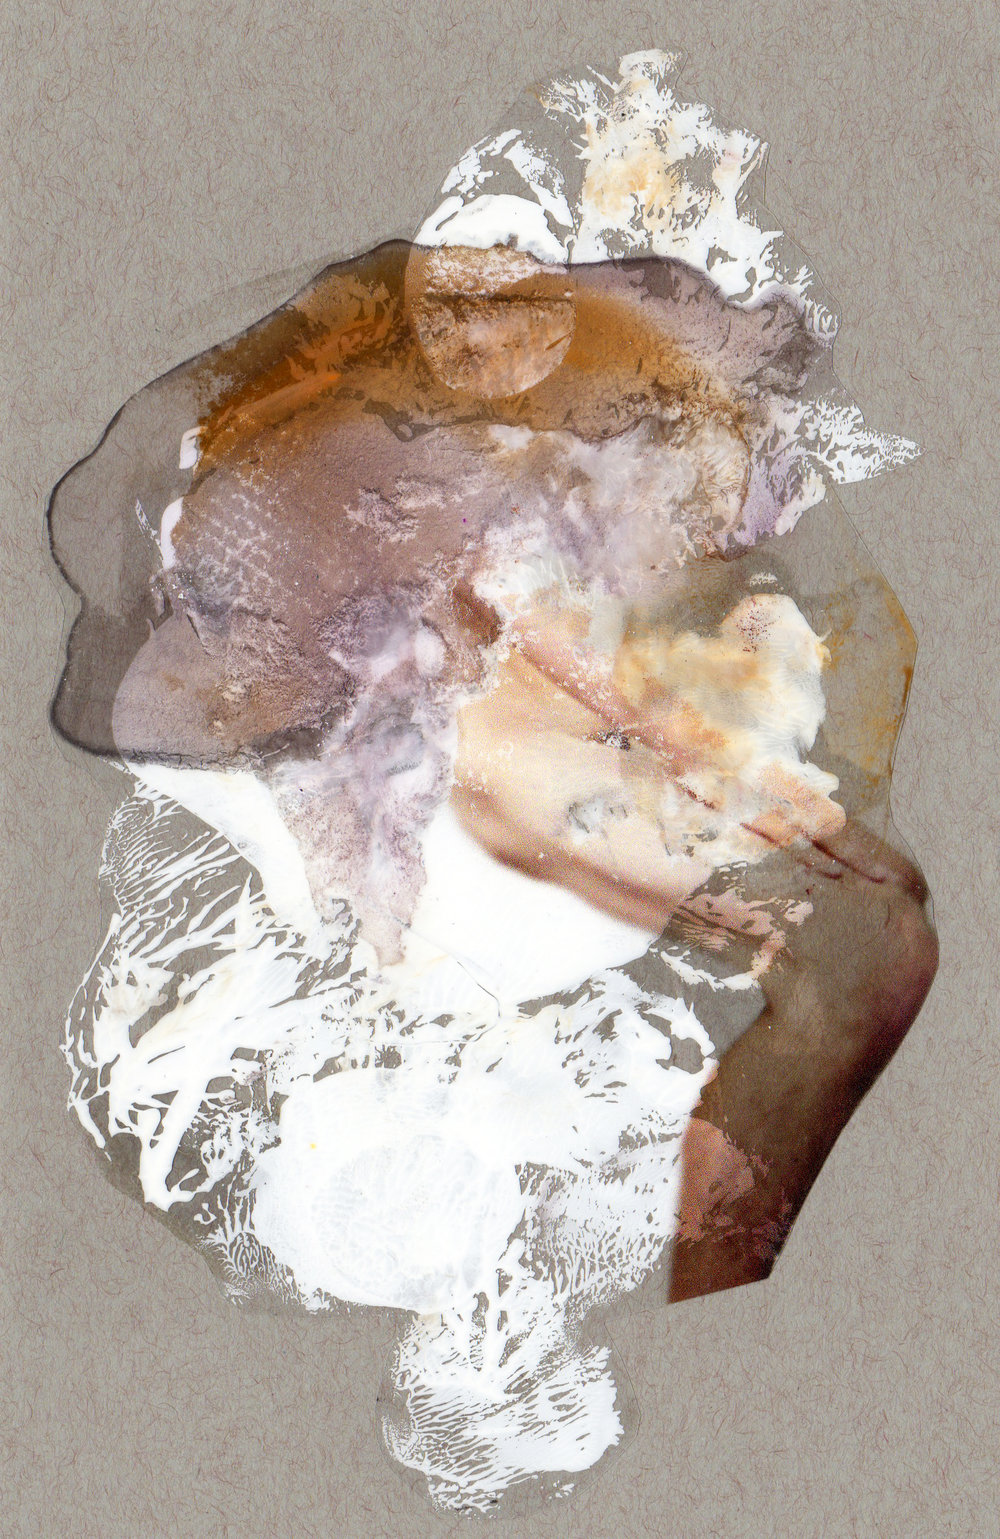 Winter Passing, 2014, paint transparency archival ink and paper, 8.5x5.5 inches